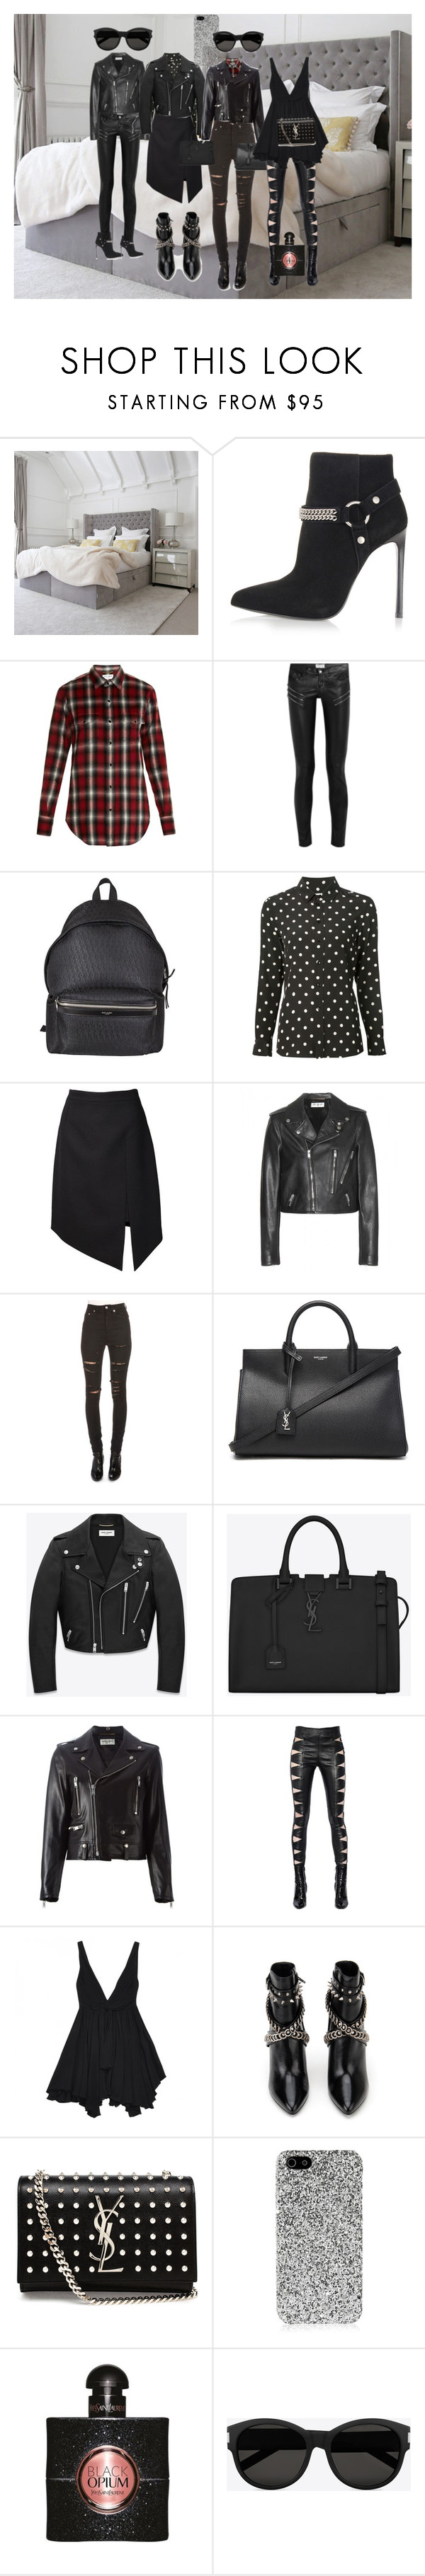 """YVES SAINT LAURENT"" by msdejazzy ❤ liked on Polyvore featuring Yves Saint Laurent"